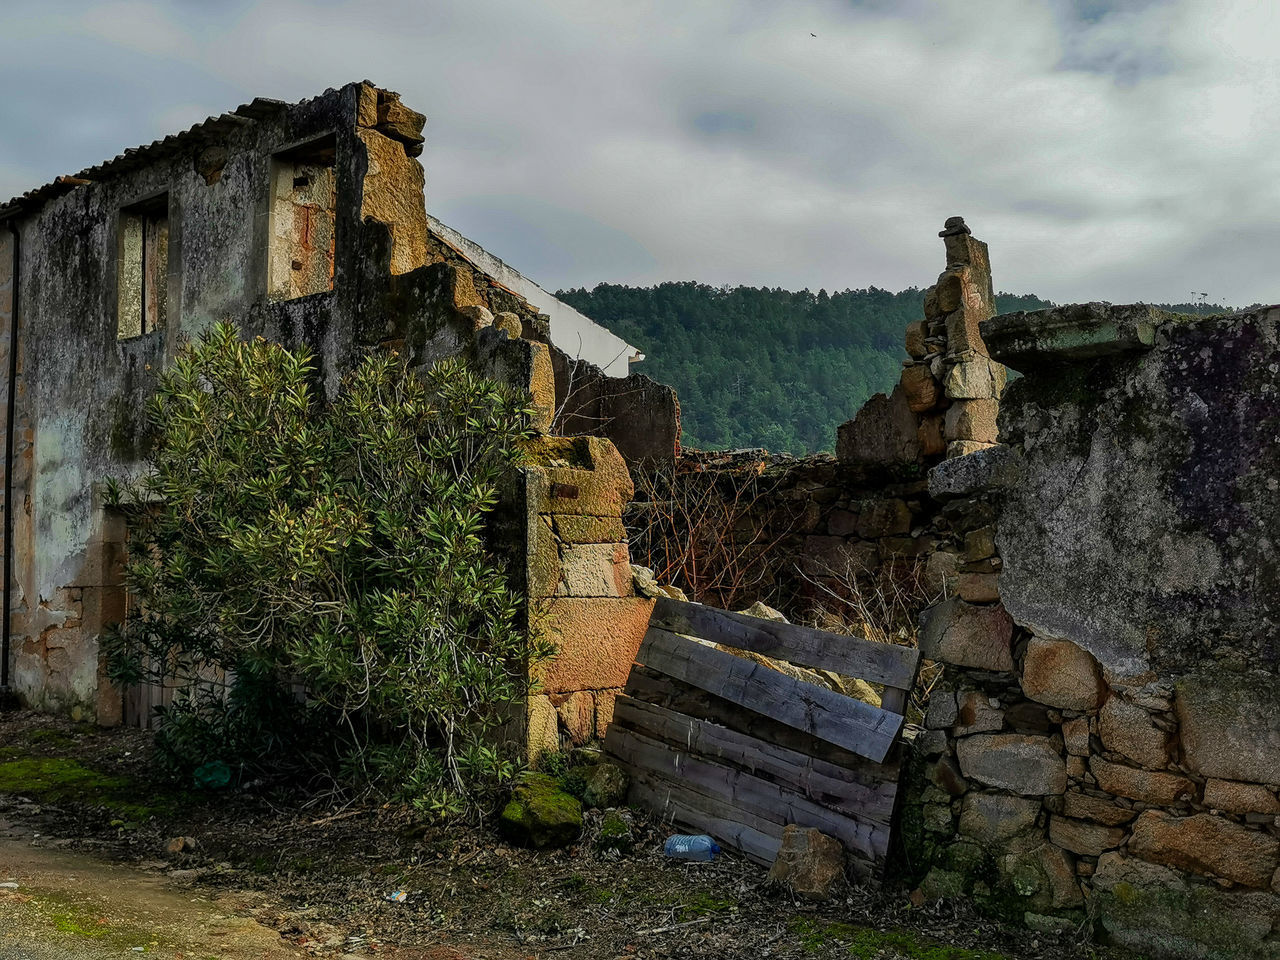 OLD RUINS AGAINST BUILDING